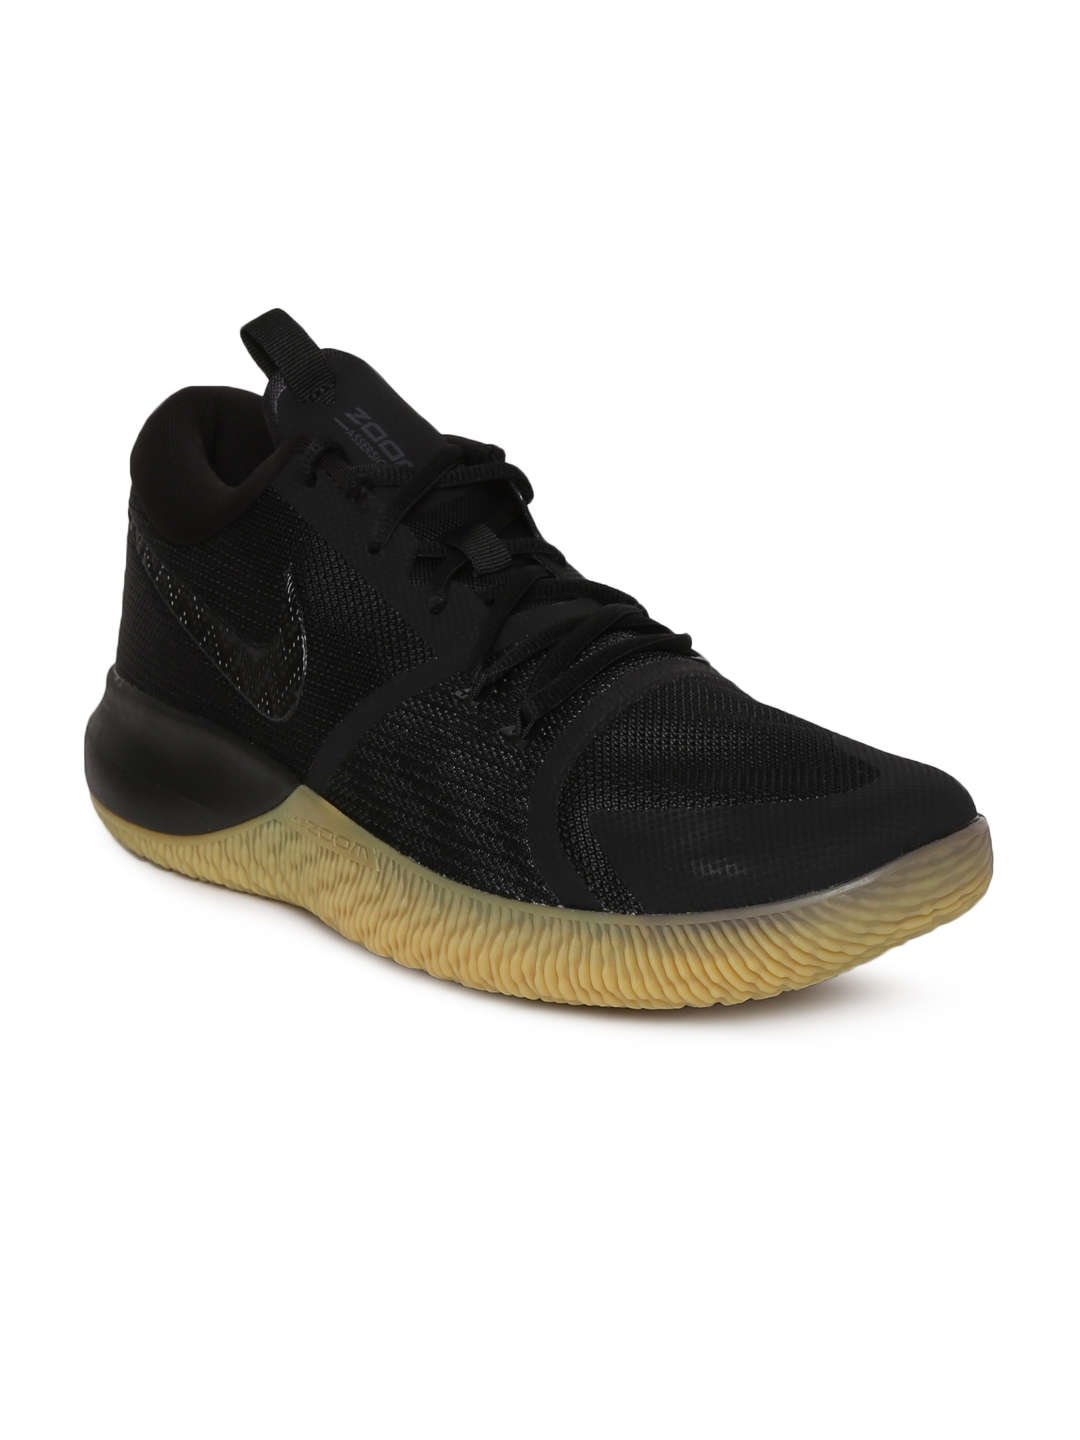 057790a2c278 Buy Nike Men Black Textile High Top Zoom Assersion Basketball Shoes ...